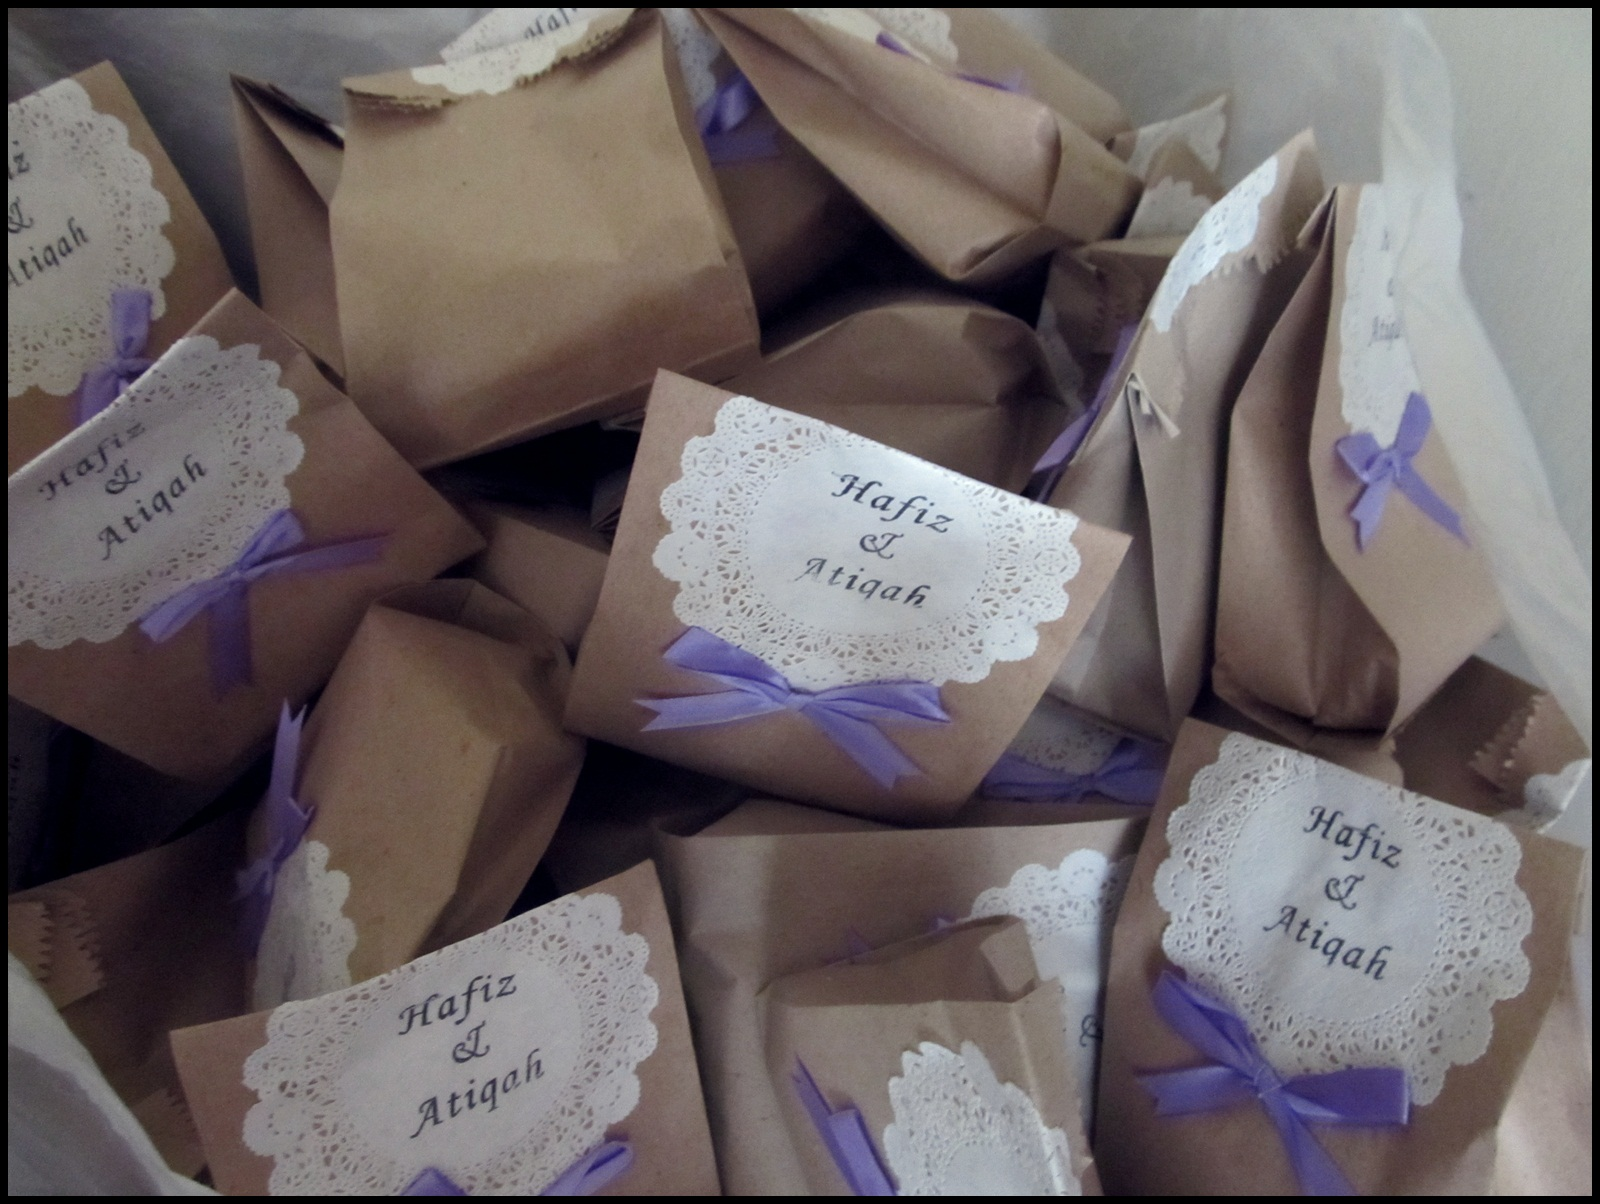 Door Gift For Wedding: Simple But Perfect By Cik 'Puan' Tqah: Wedding Review